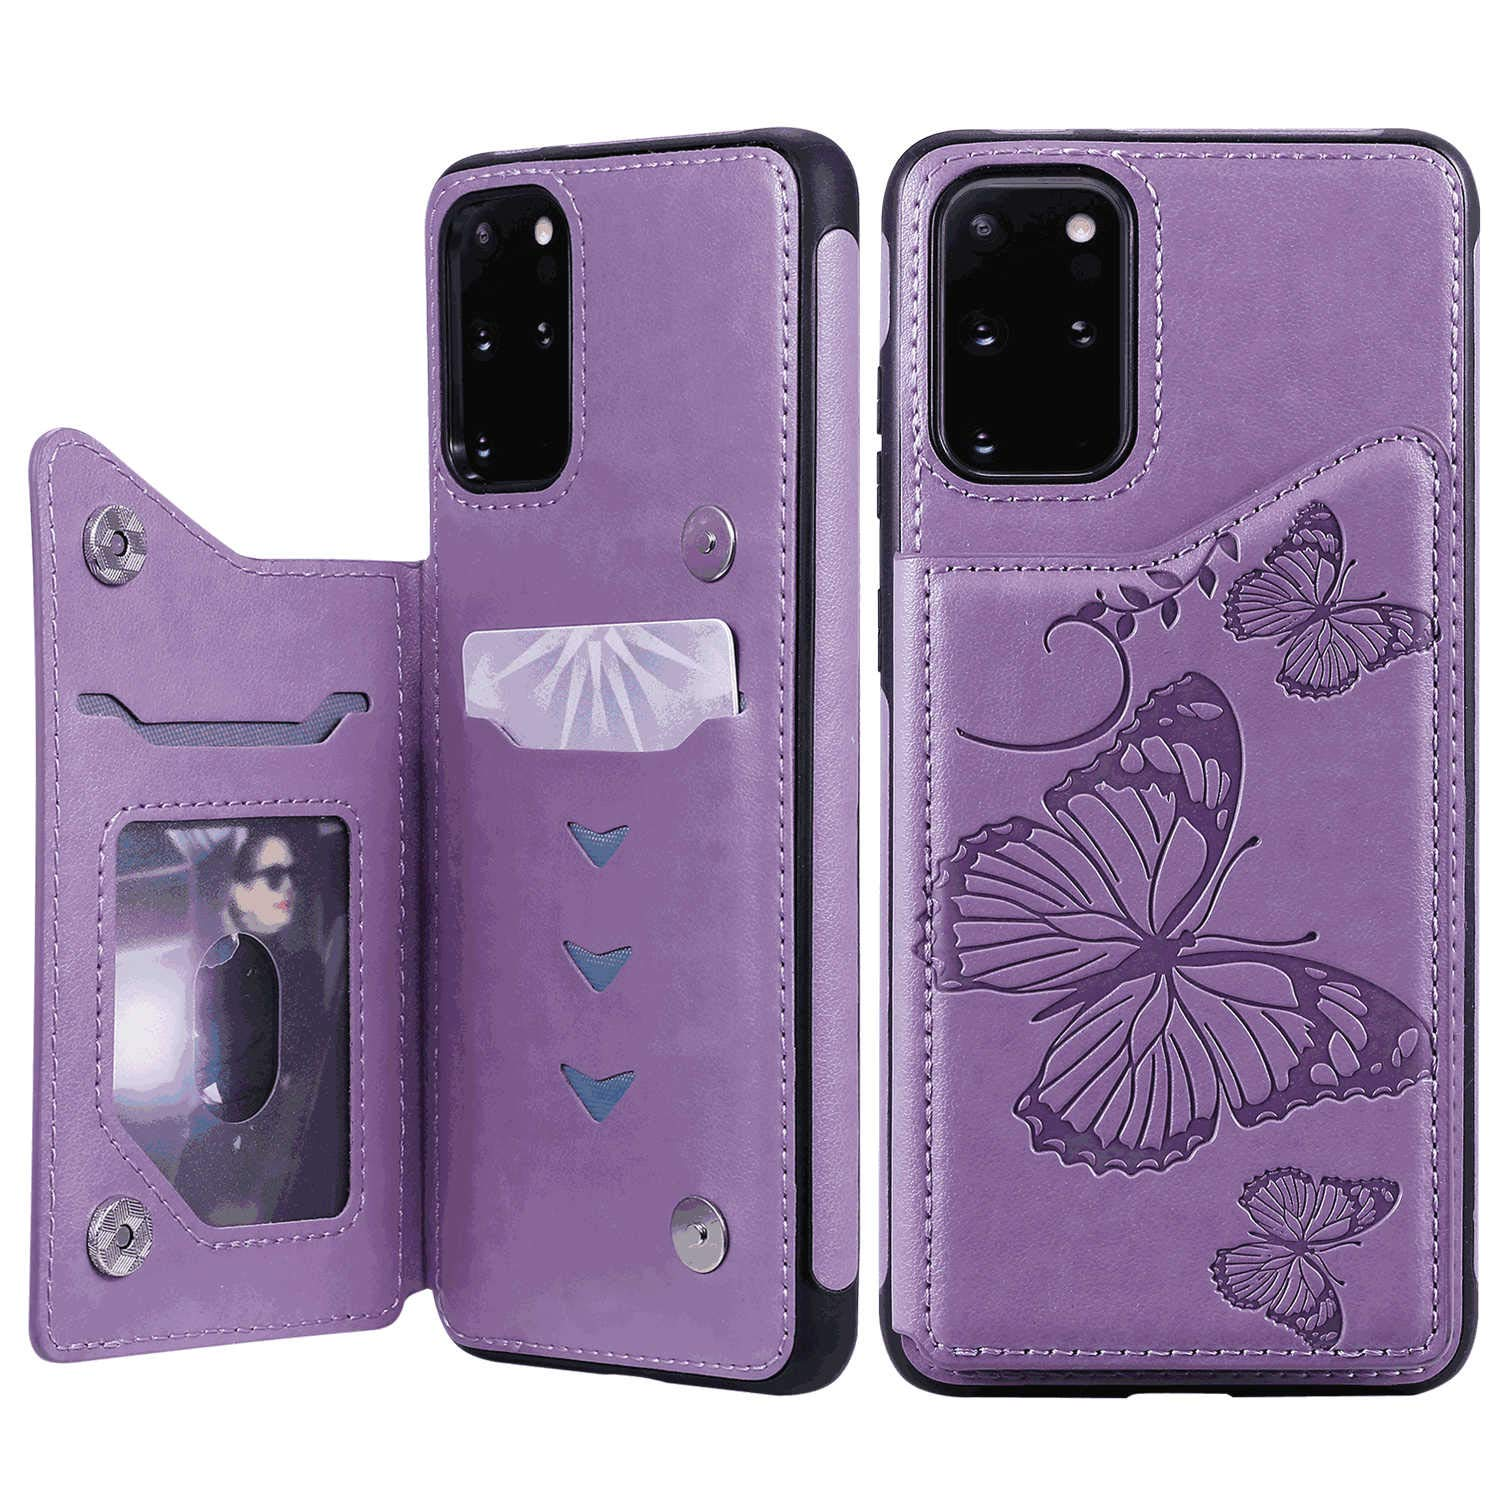 PU Leather Flip Cover Compatible with iPhone 11 Pro Max, Elegant Blue Wallet Case for iPhone 11 Pro Max